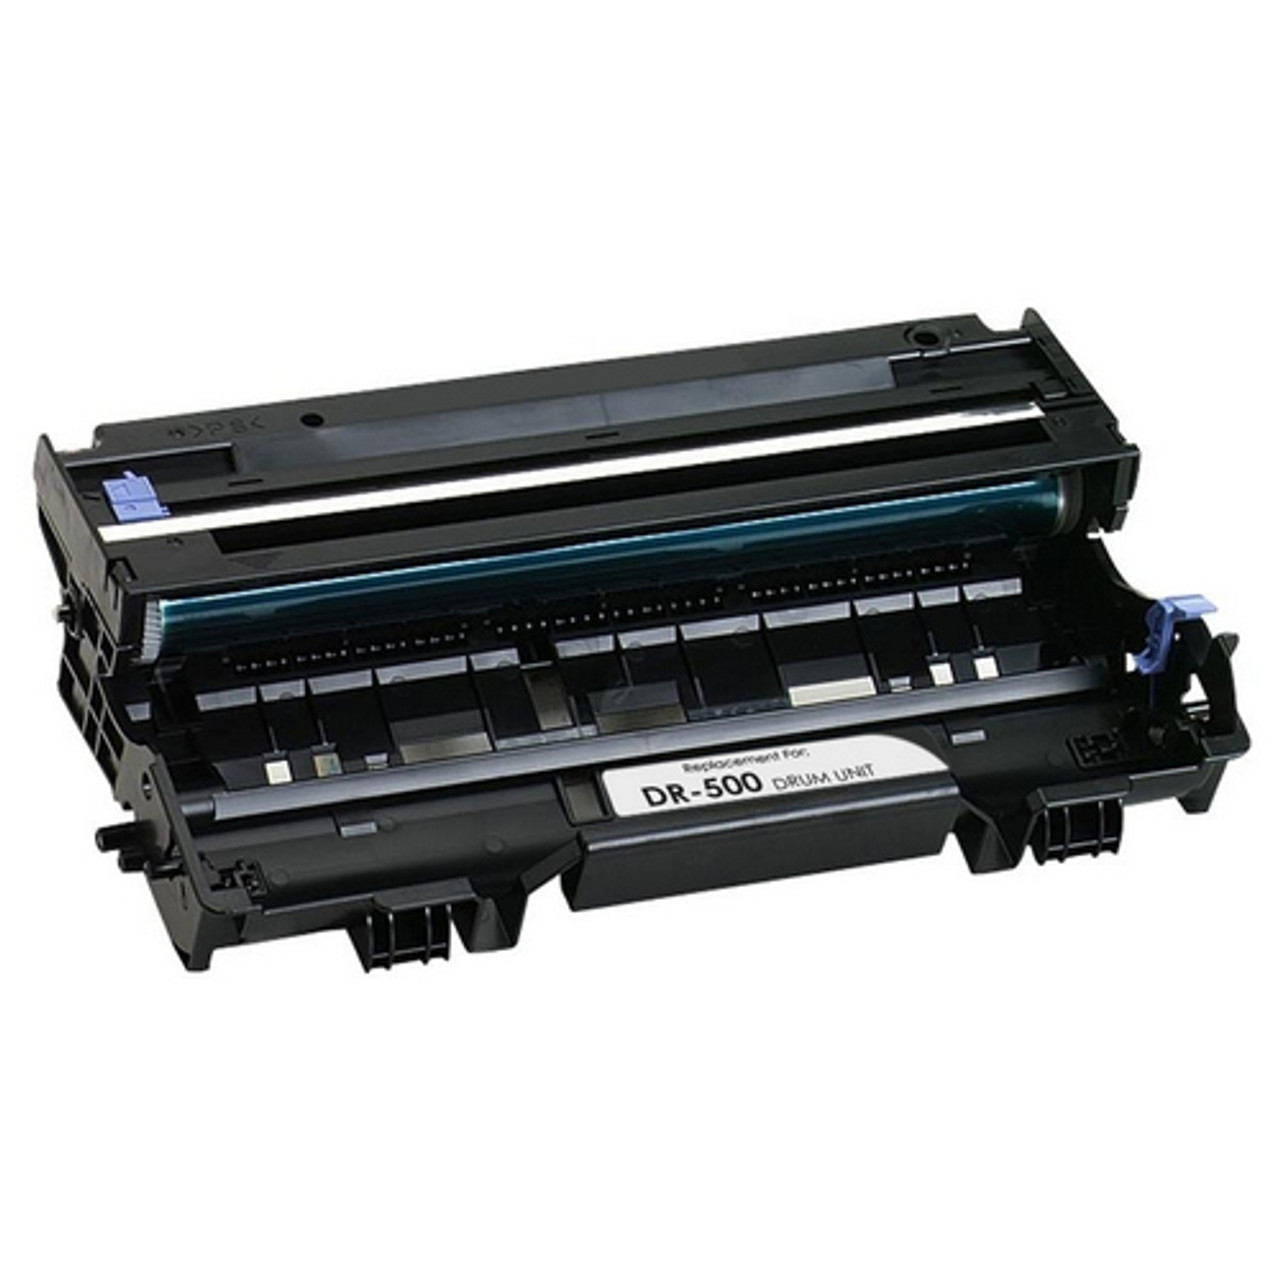 2-PK Toner Cartridges TN560 for Brother HL-1670N HL-1870n HL-5040 Laser Printer